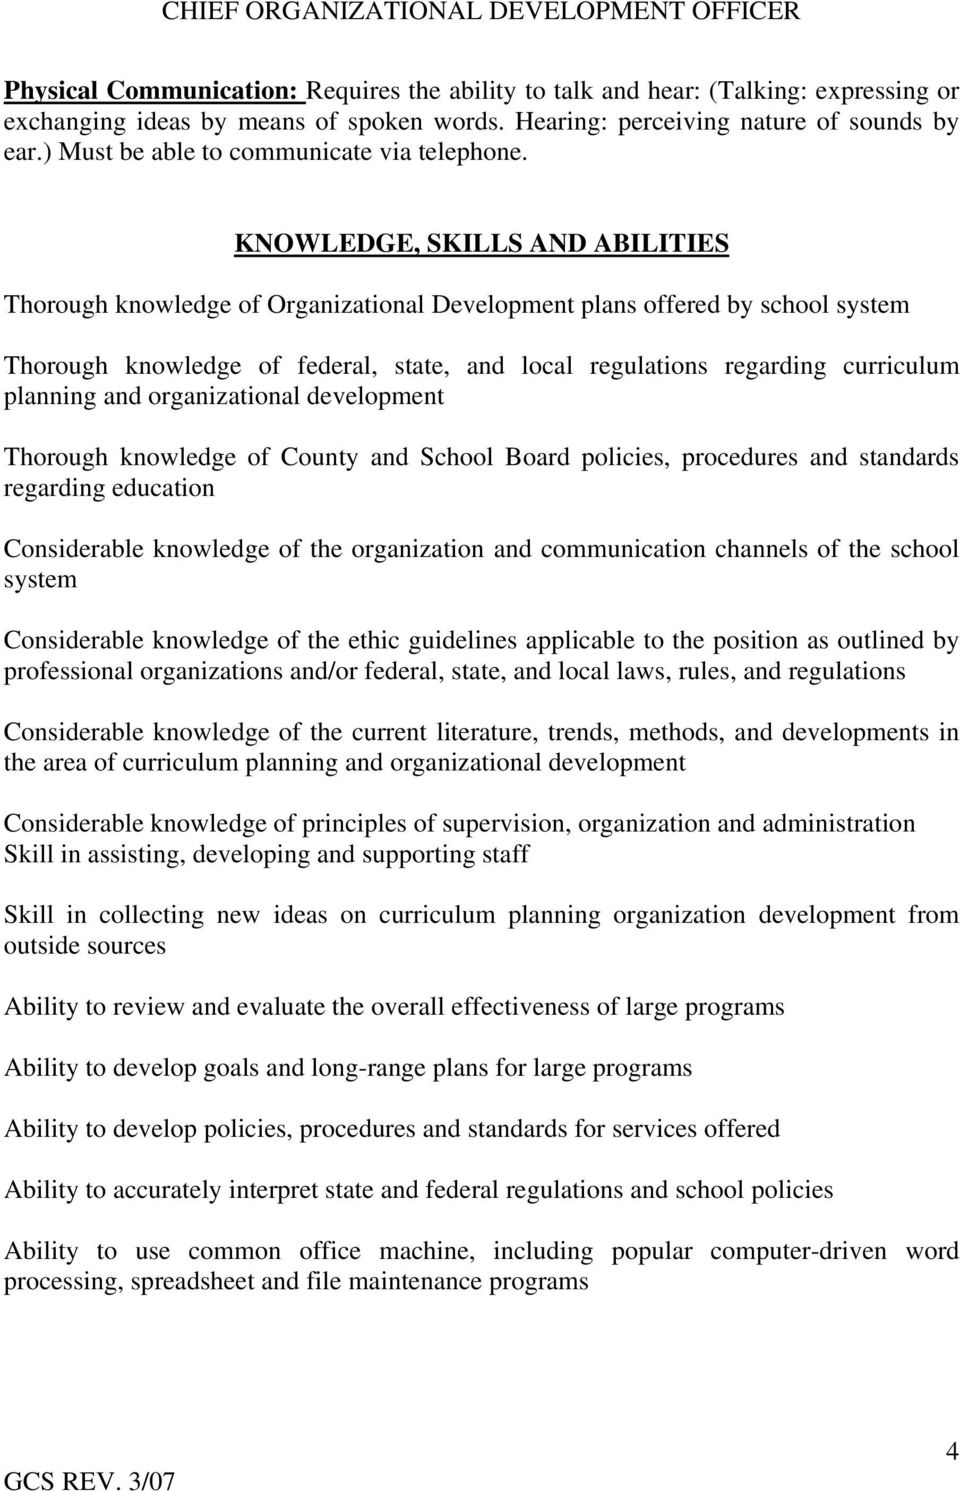 KNOWLEDGE, SKILLS AND ABILITIES Thorough knowledge of Organizational Development plans offered by school system Thorough knowledge of federal, state, and local regulations regarding curriculum